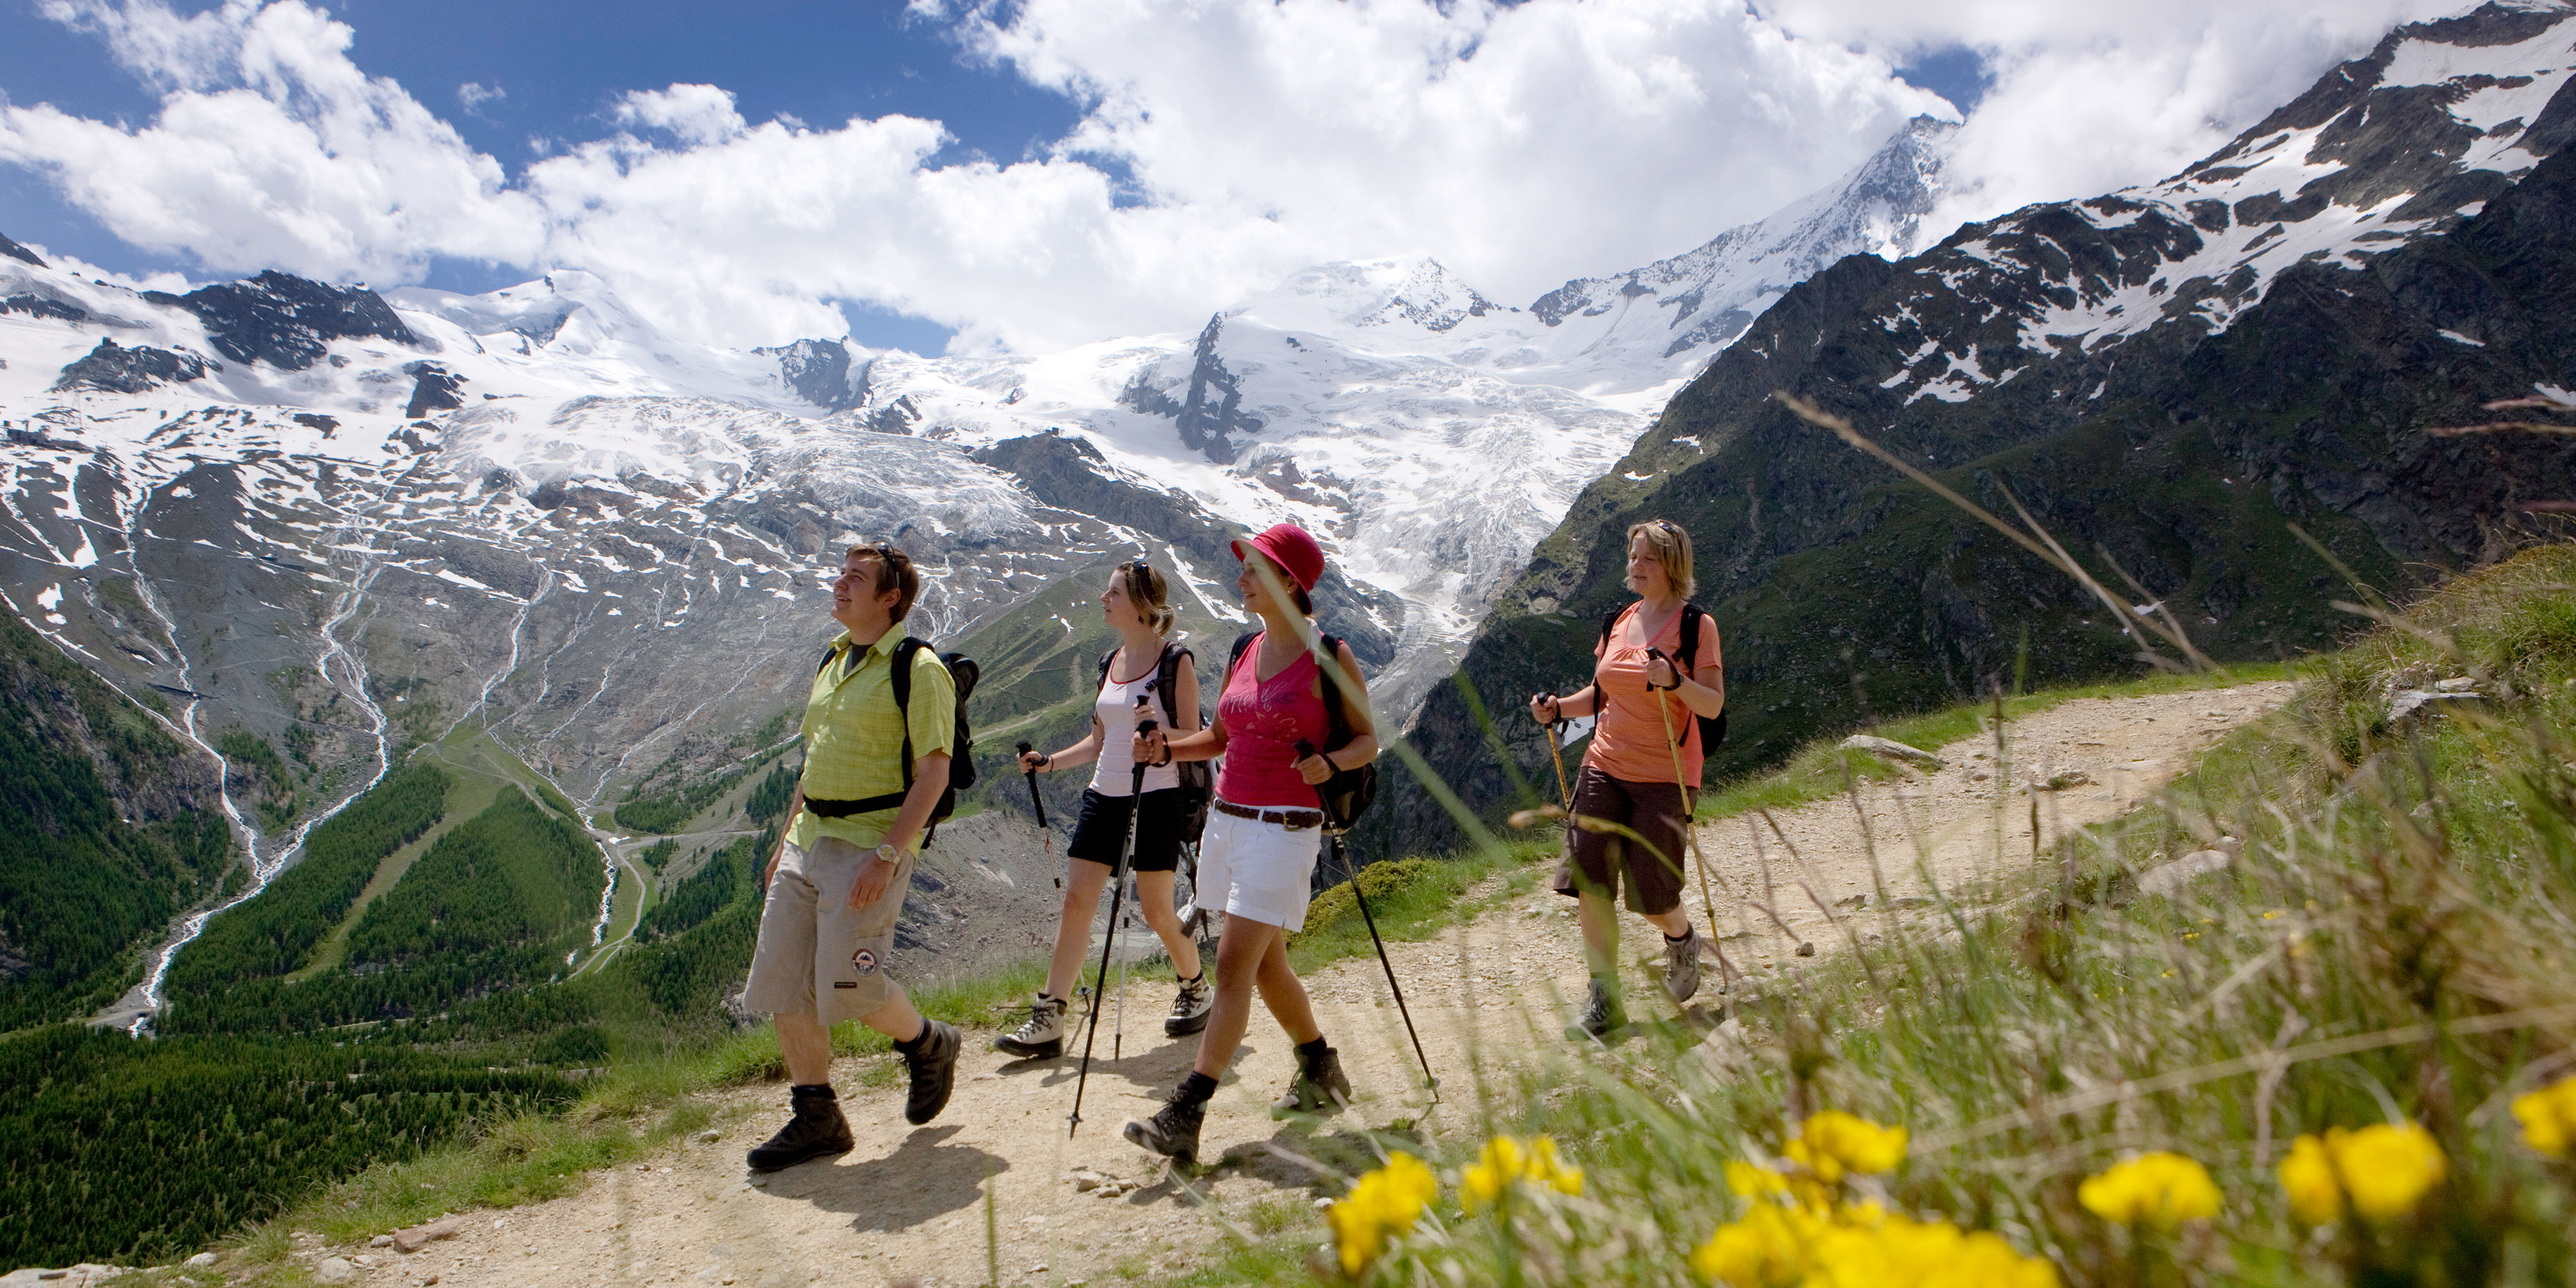 Summer sports in the Free Republic of Holidays Saas-Fee